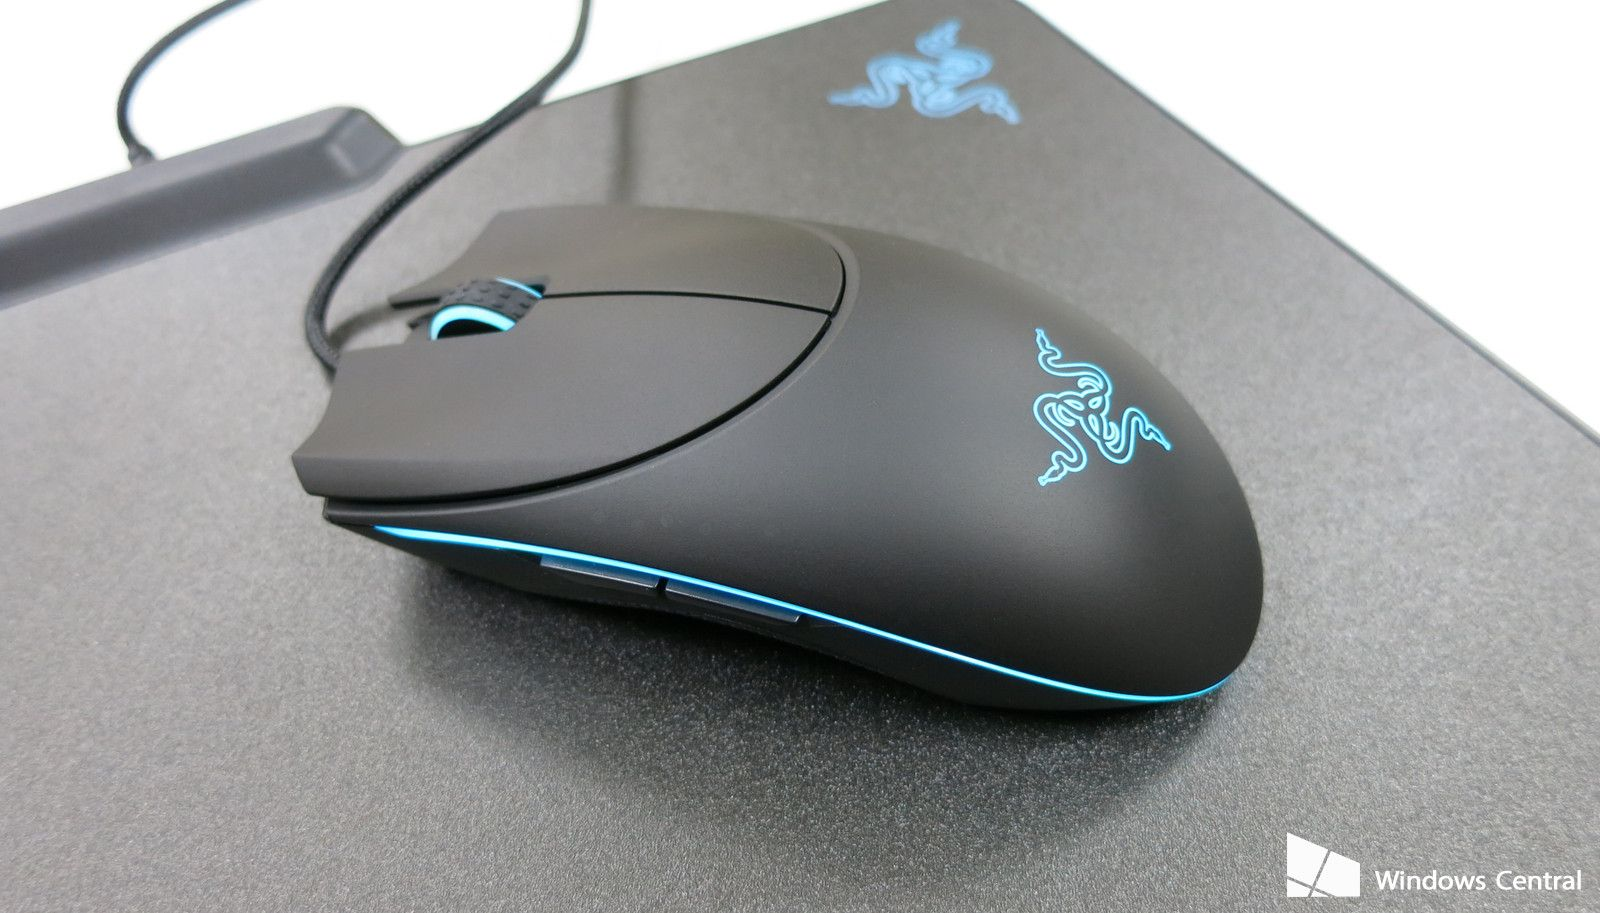 Razer-Diamondback-Ambidextrous-Mouse-and-Firefly-Mouse-Mat-photo-main.jpg (1600×913)